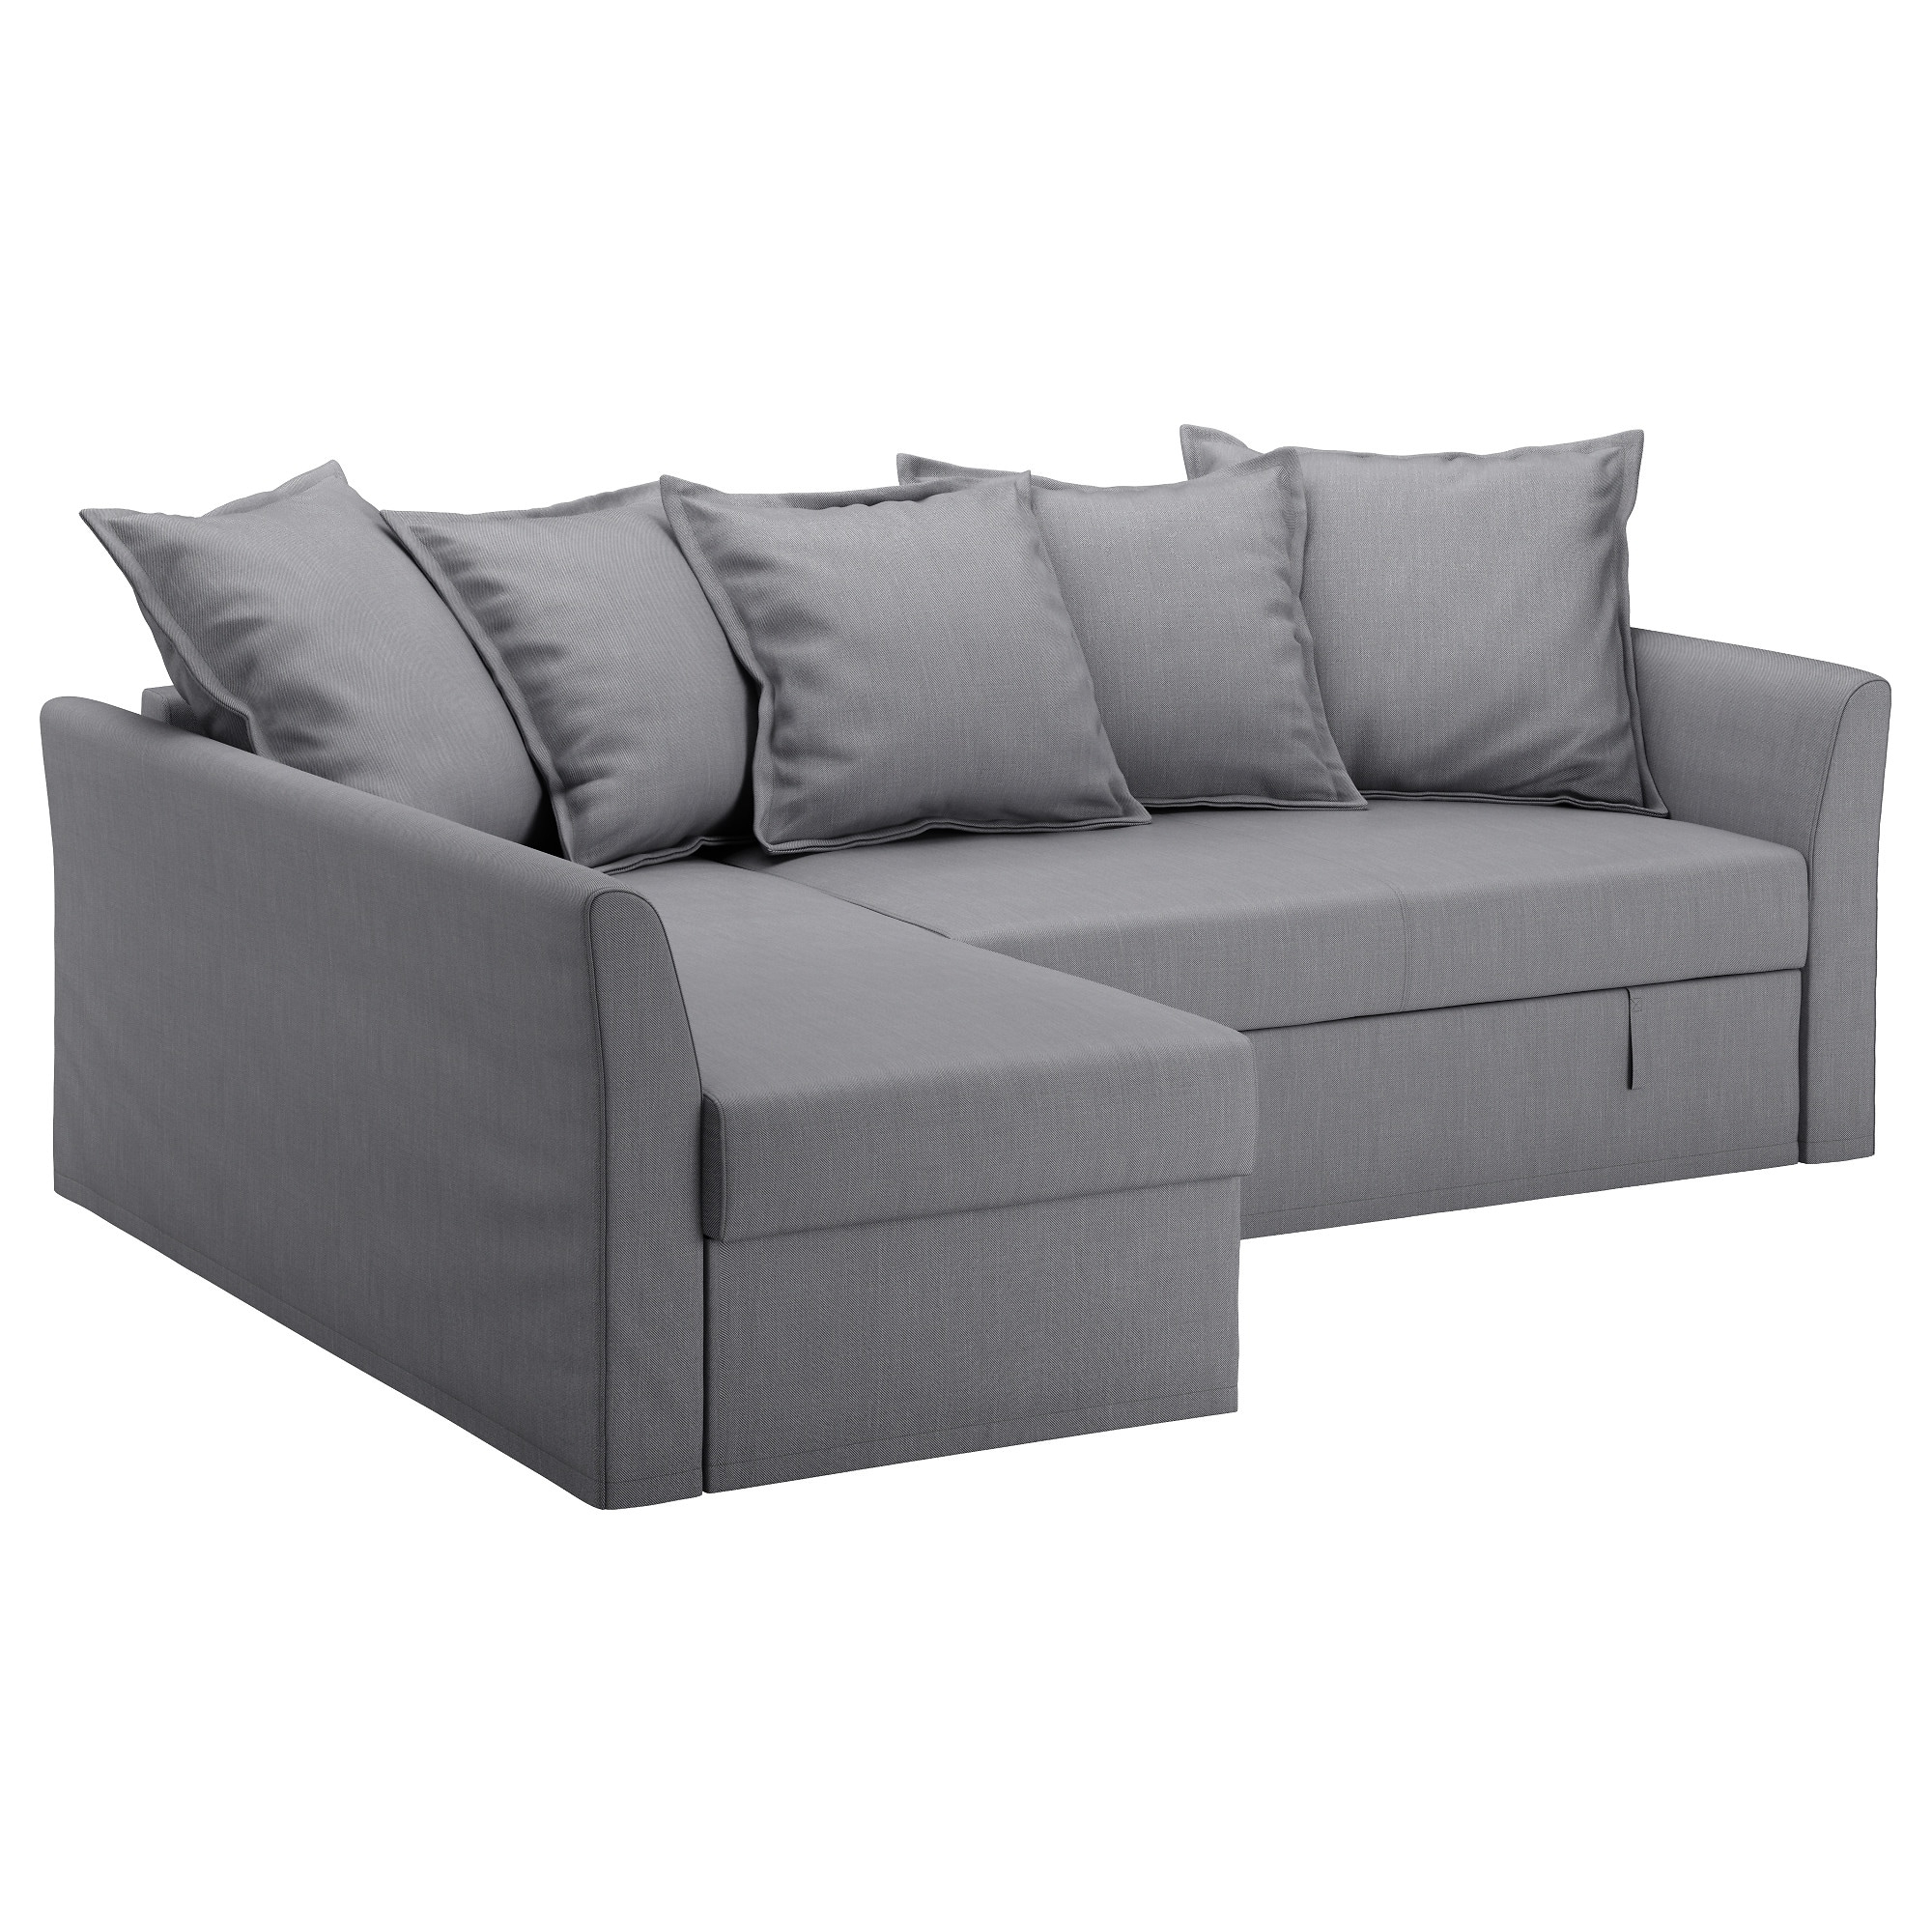 Sofa Beds Chairs Intended For Most Recently Released Holmsund Corner Sofa Bed Nordvalla Medium Grey – Ikea (View 5 of 20)